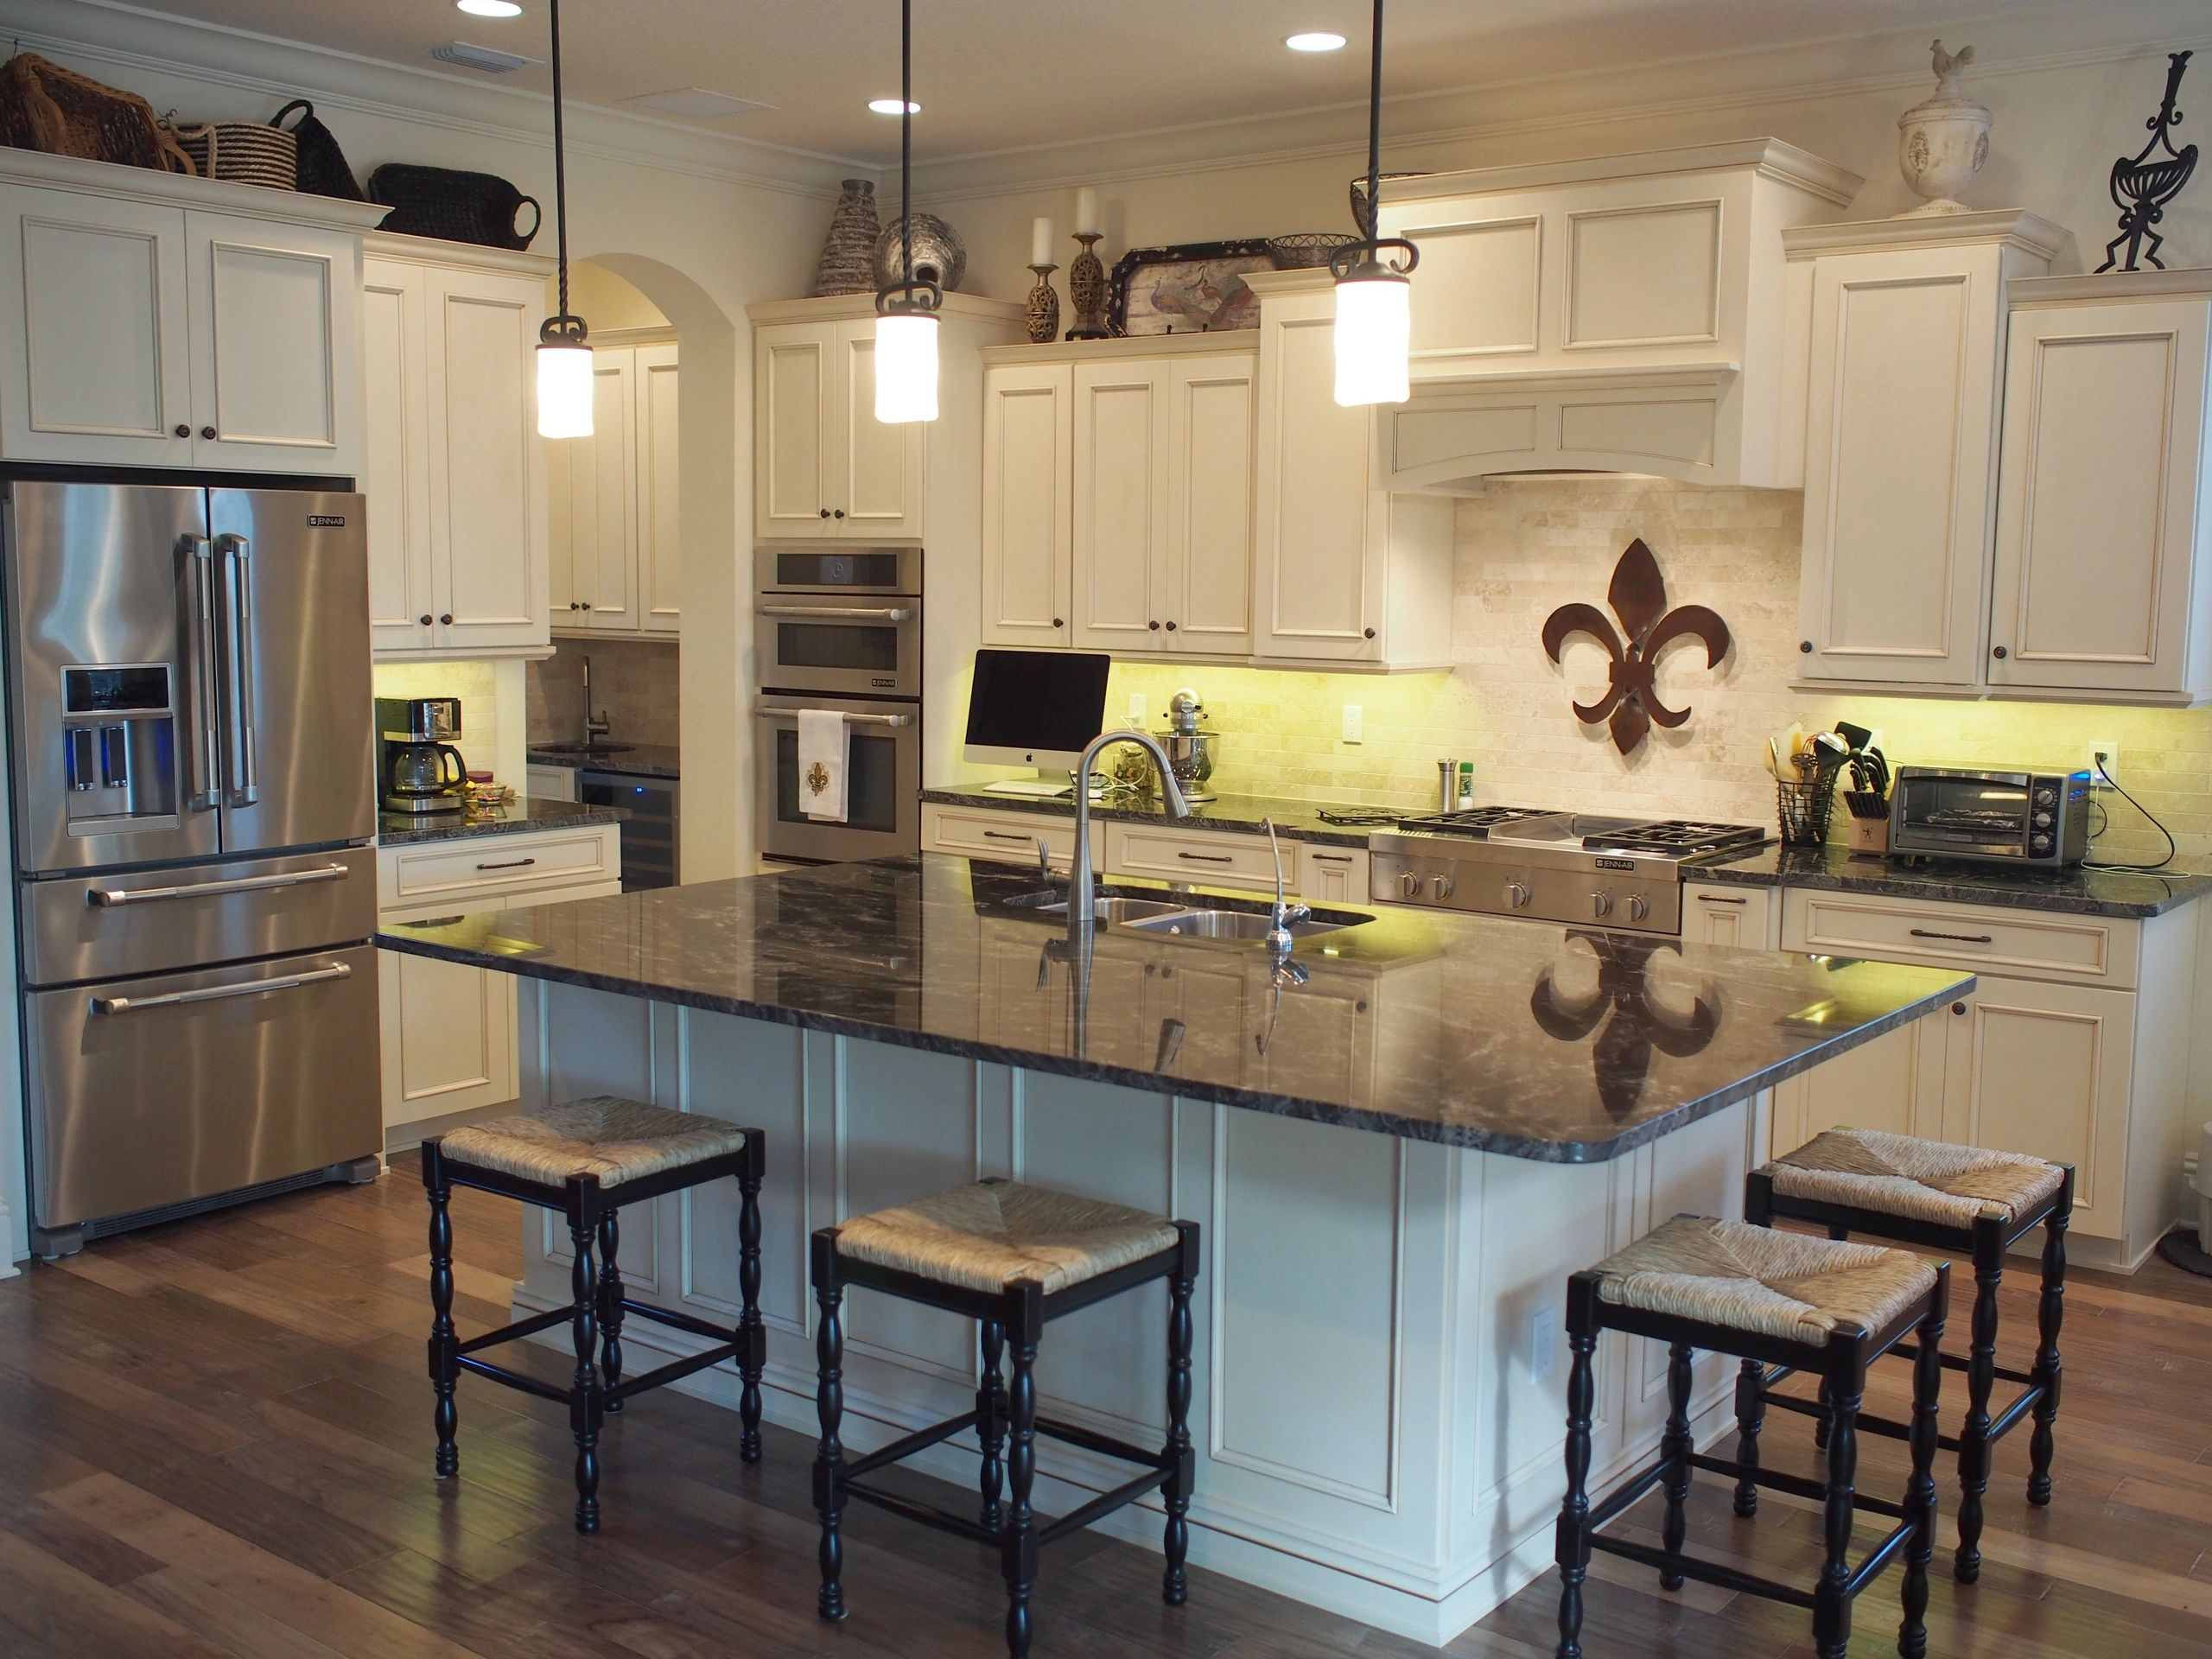 The Cabinet Place Of Tampa Bay Cabinets Kitchen Cabinetry